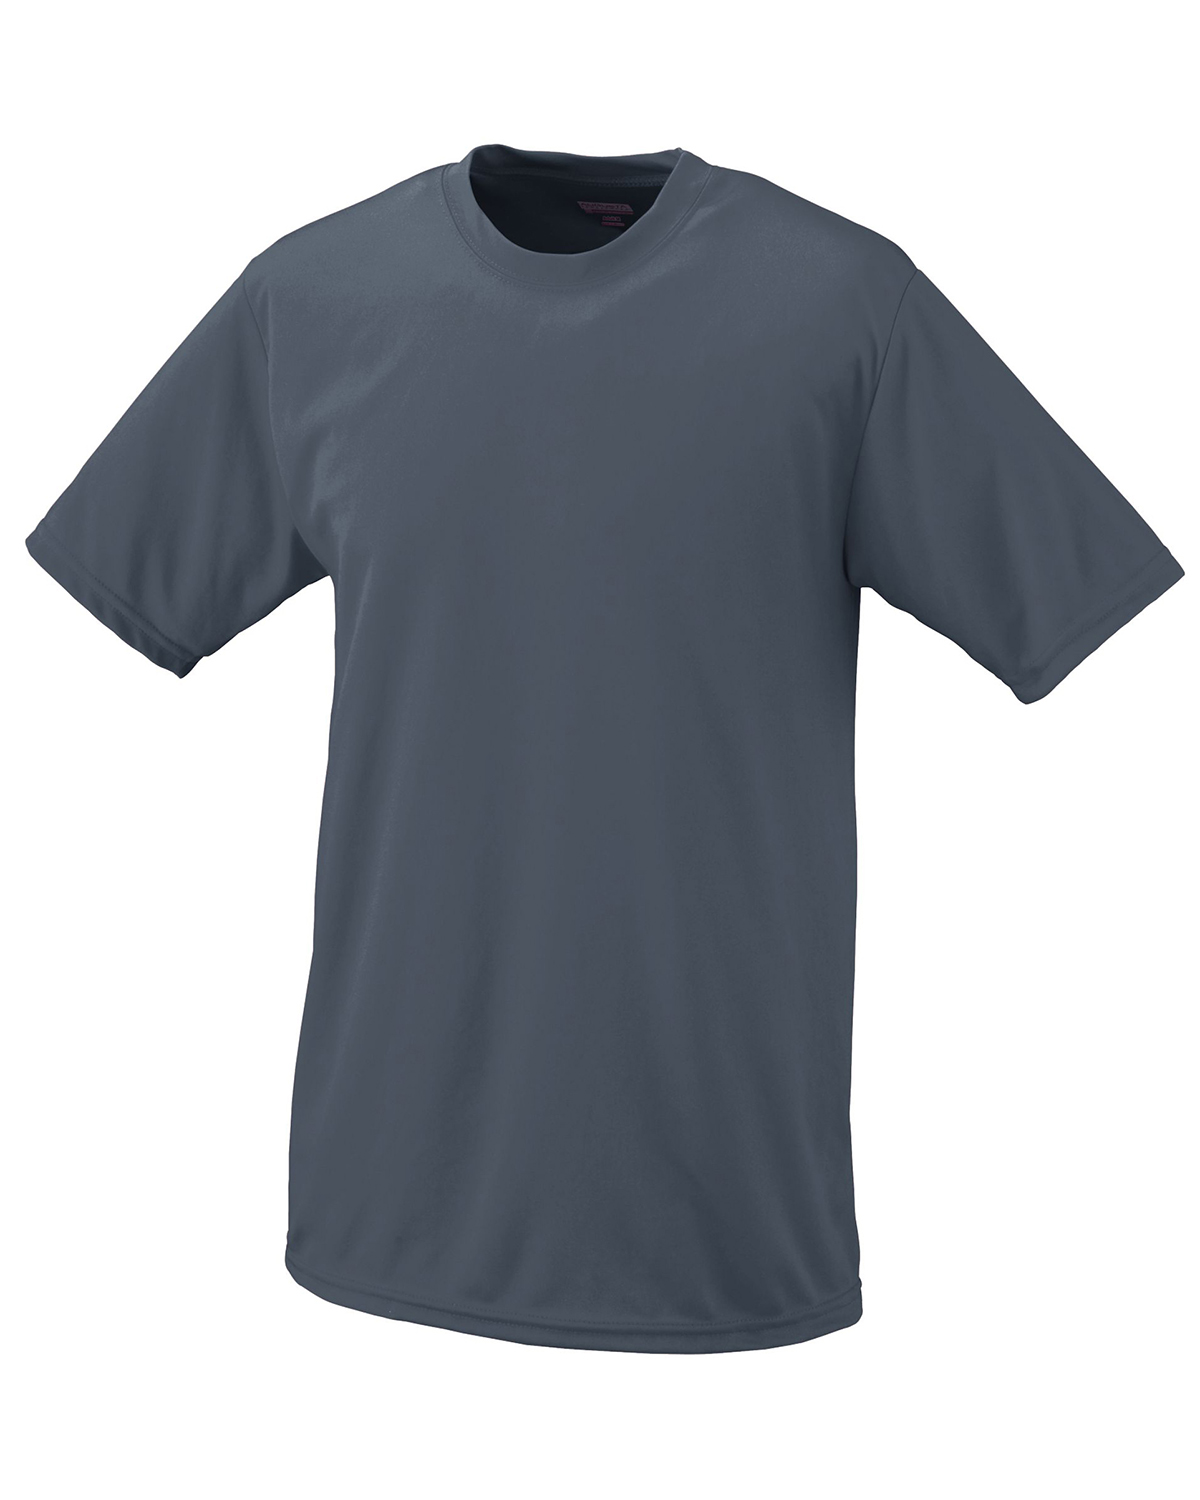 Top of the World NCAA Mens Recycled Performance Team Color Fabric Short Sleeve Tee